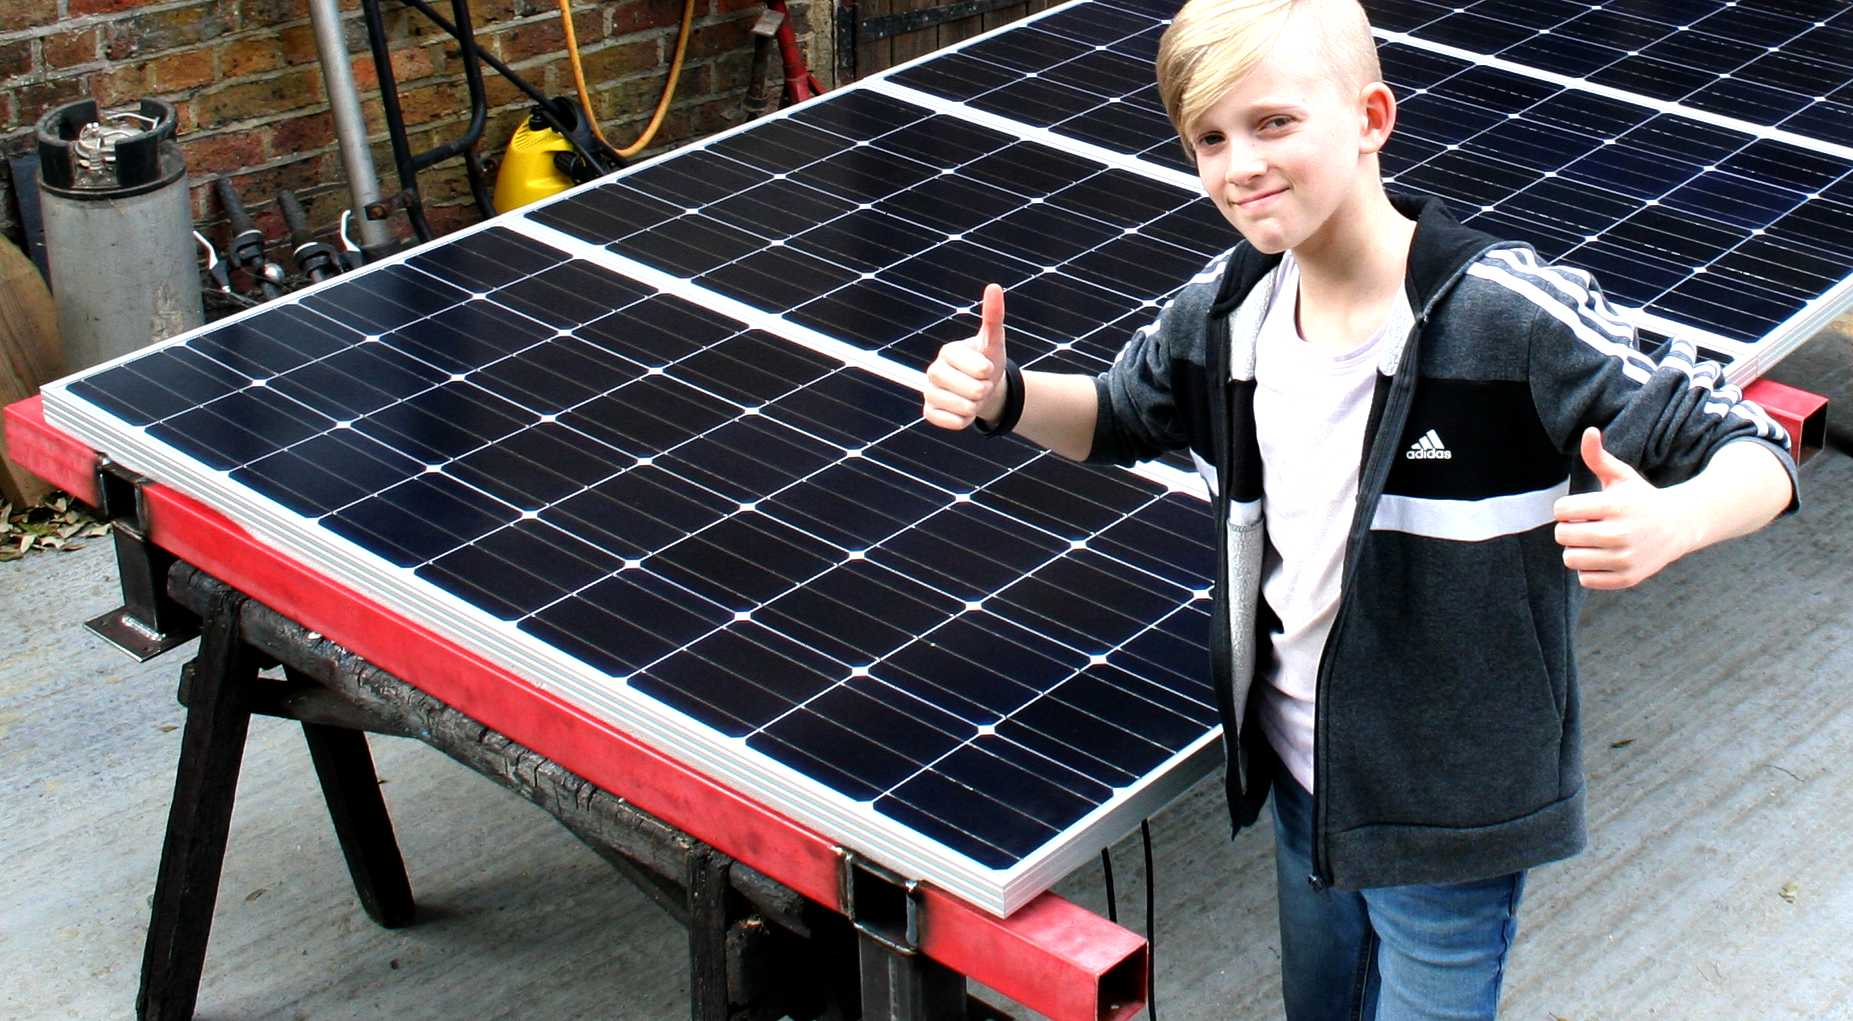 Ryan Dusart likes solar power because it is clean renewable energy